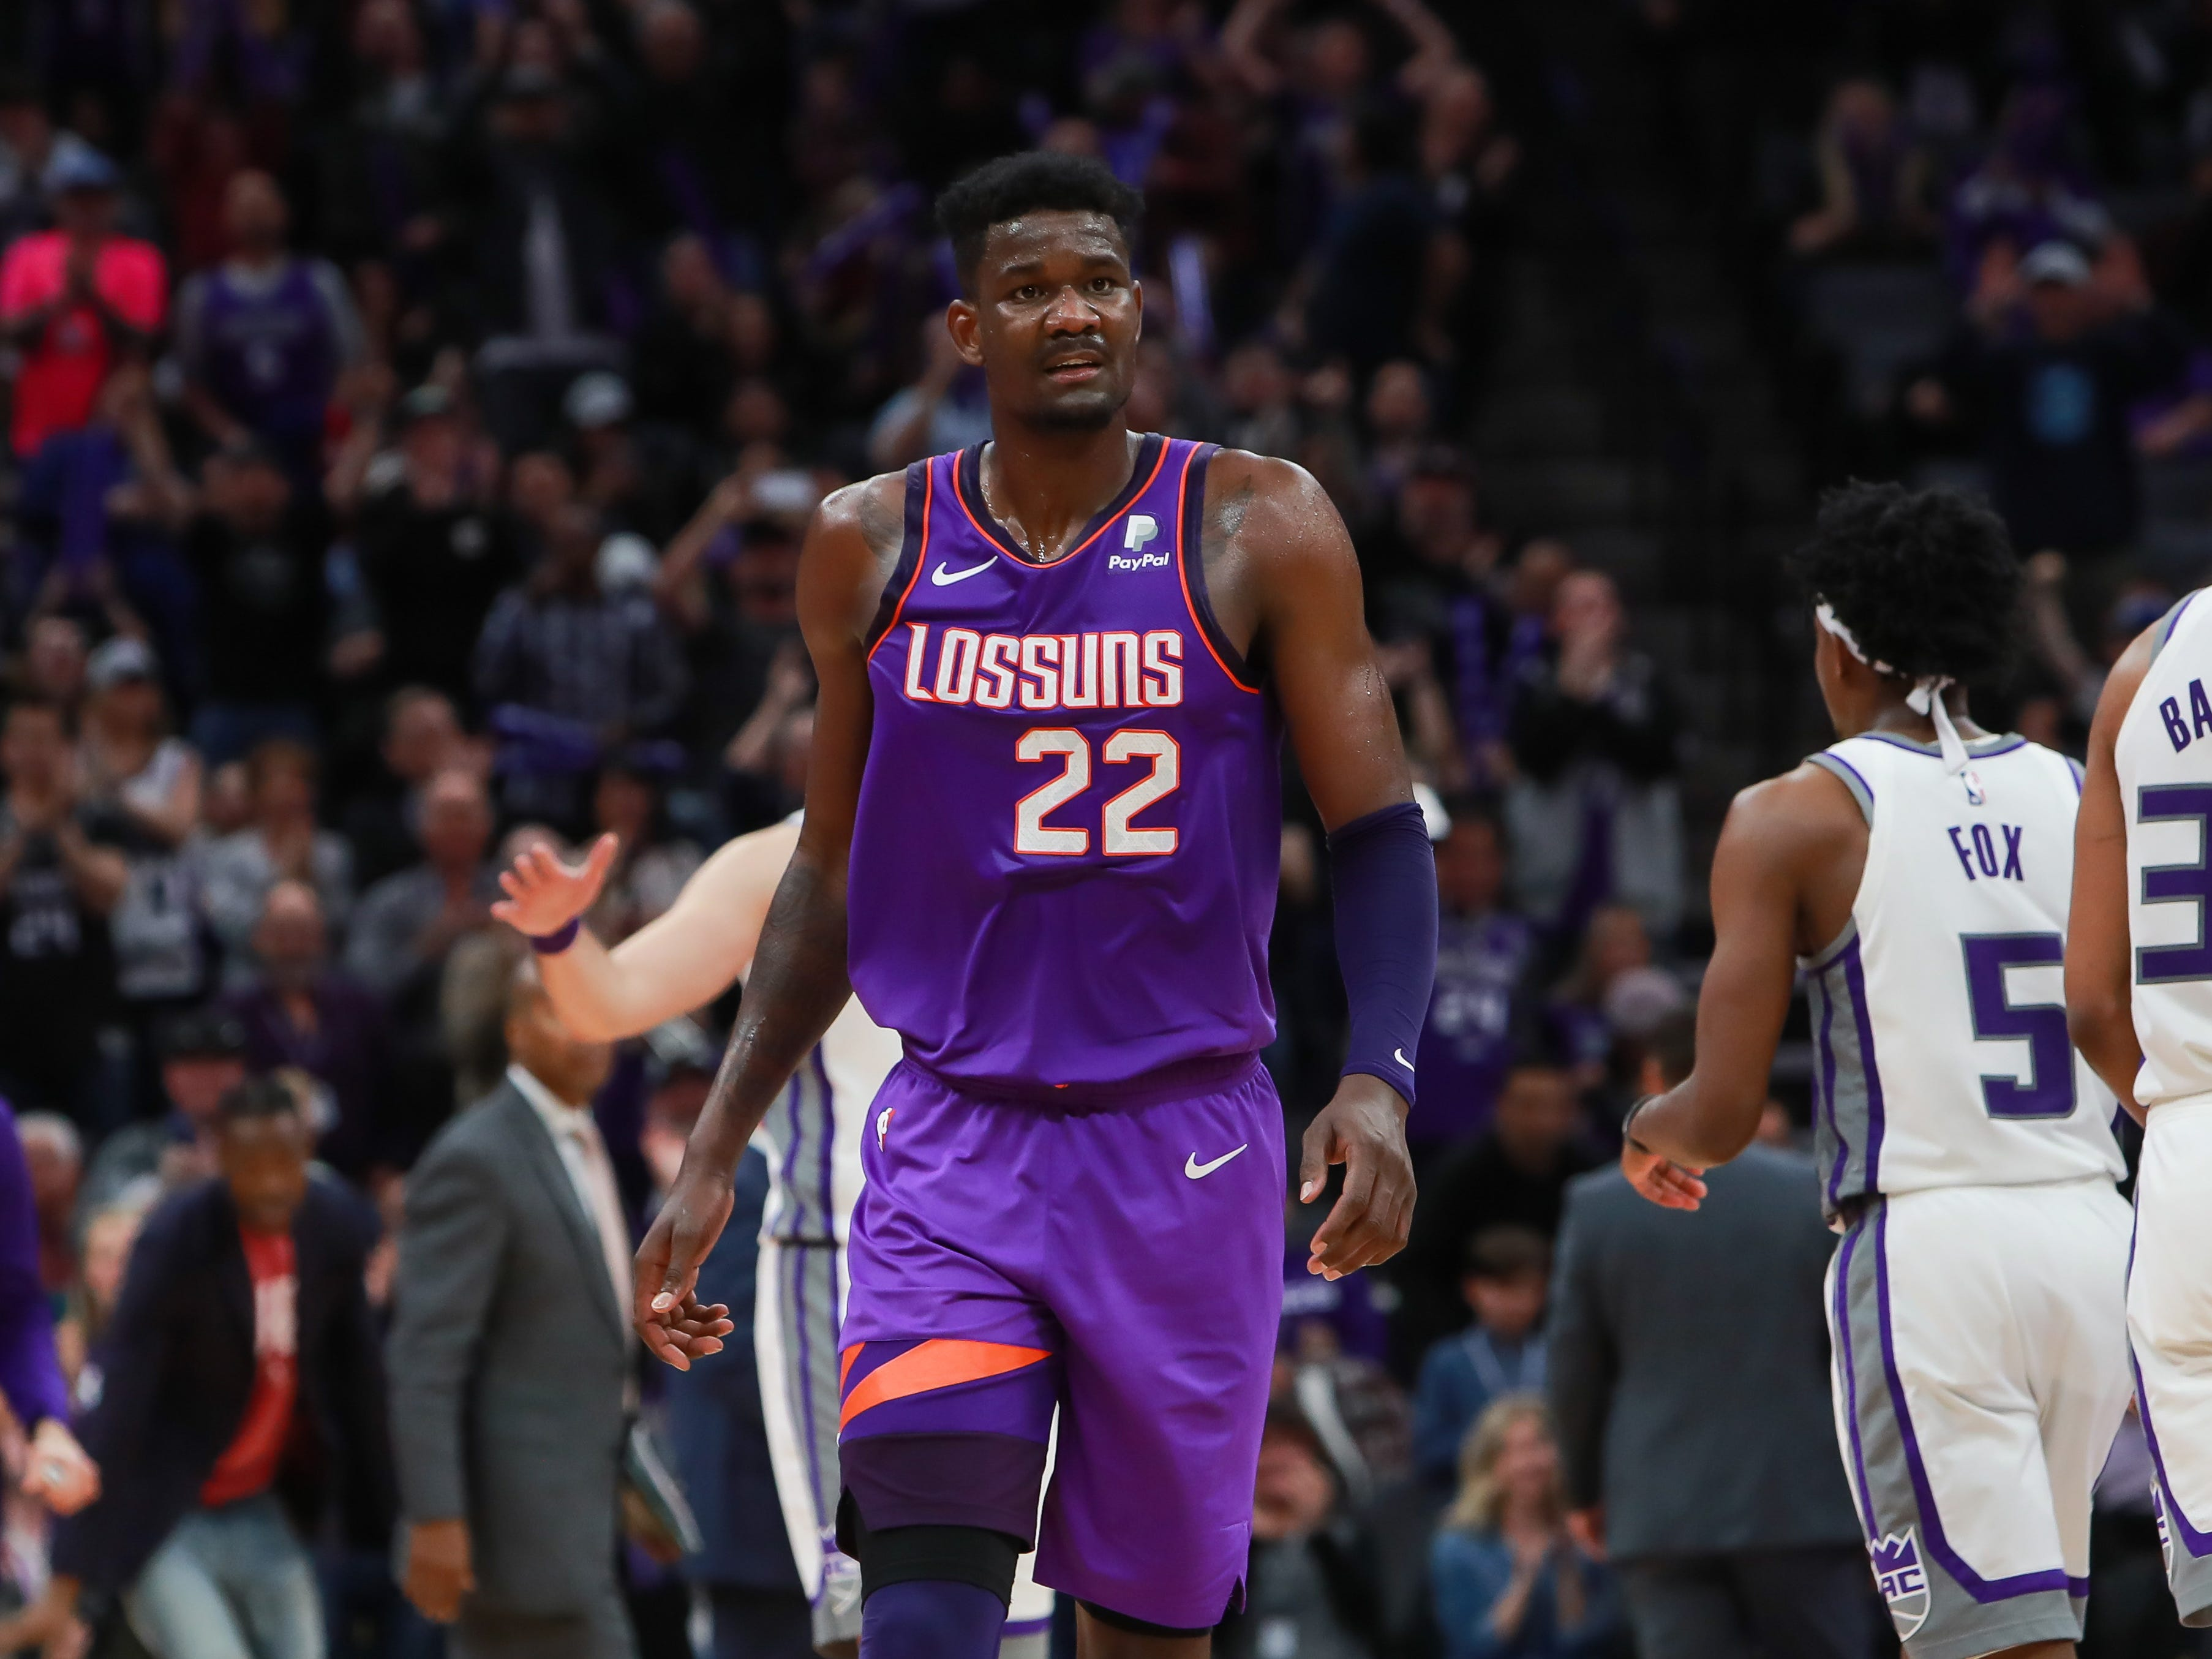 Mar 23, 2019; Sacramento, CA, USA; Phoenix Suns center Deandre Ayton (22) walks off the court against the Sacramento Kings at Golden 1 Center.